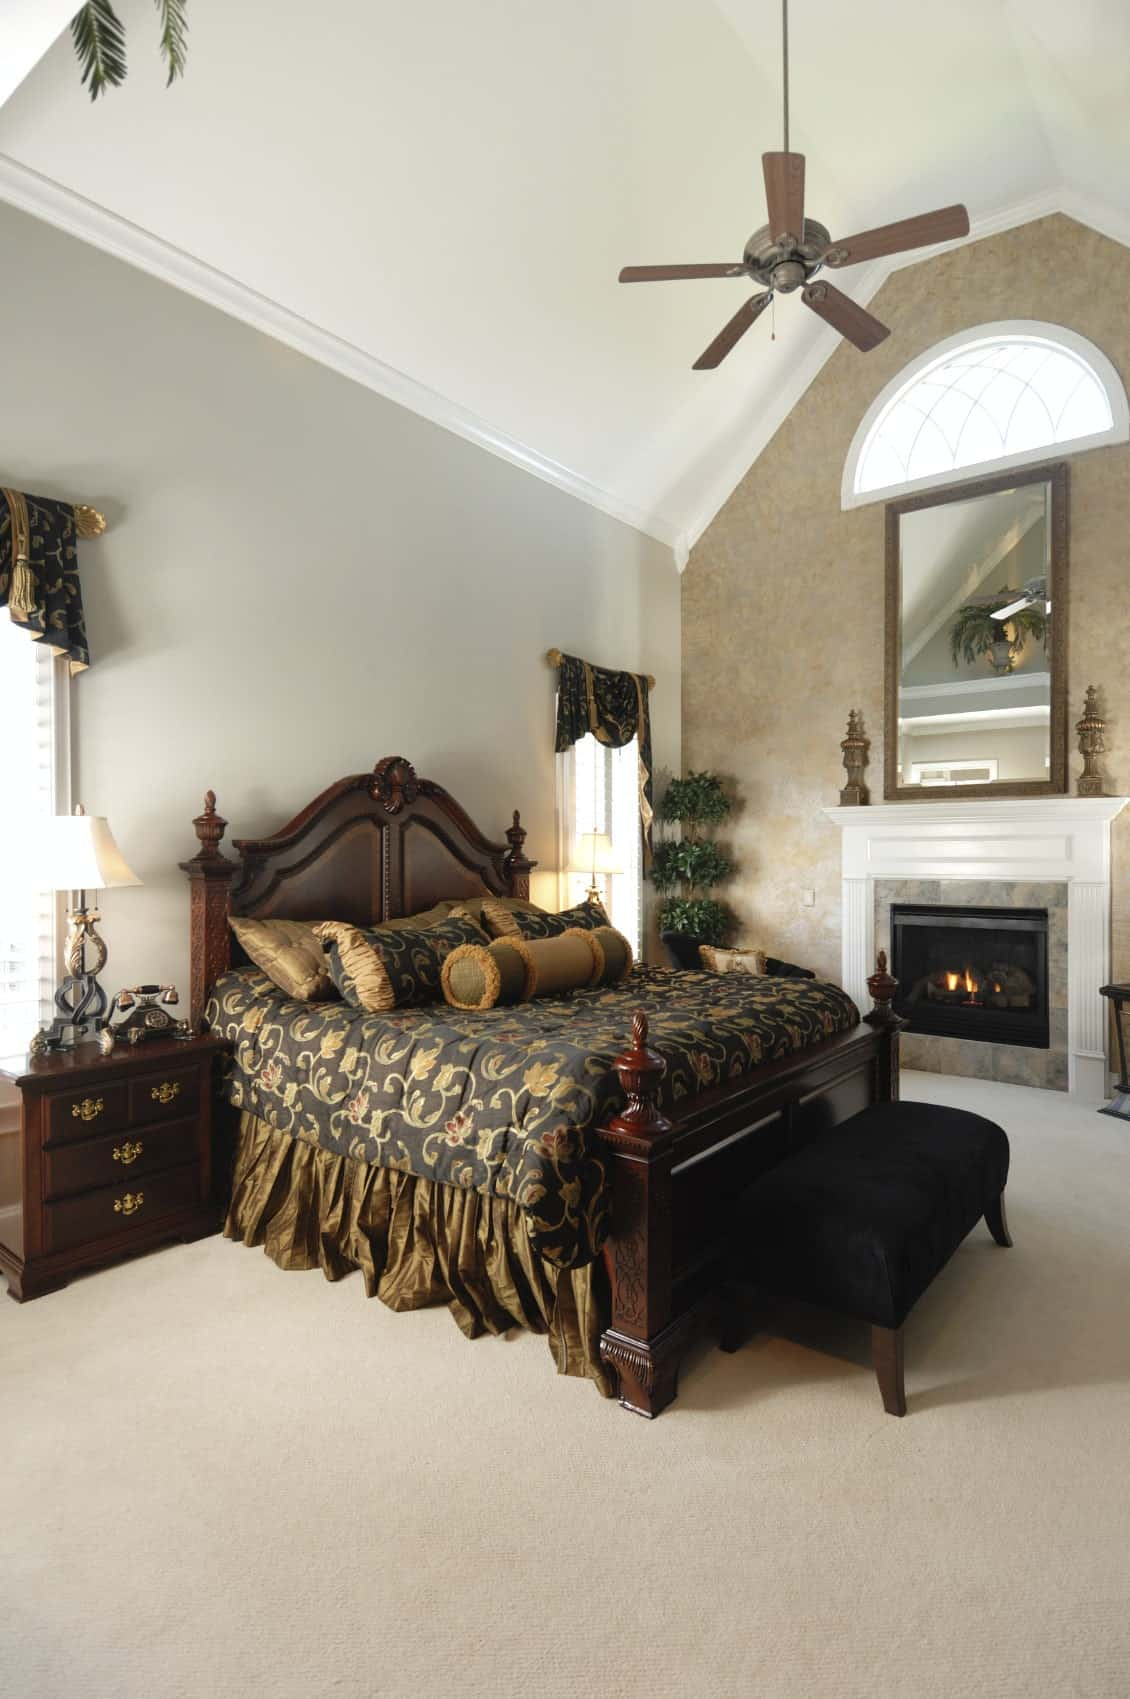 A wooden bed dressed in green floral bedding complements the classy valances covering the glazed windows. This primary bedroom features a fireplace and a chrome fan that hung from the high vaulted ceiling.